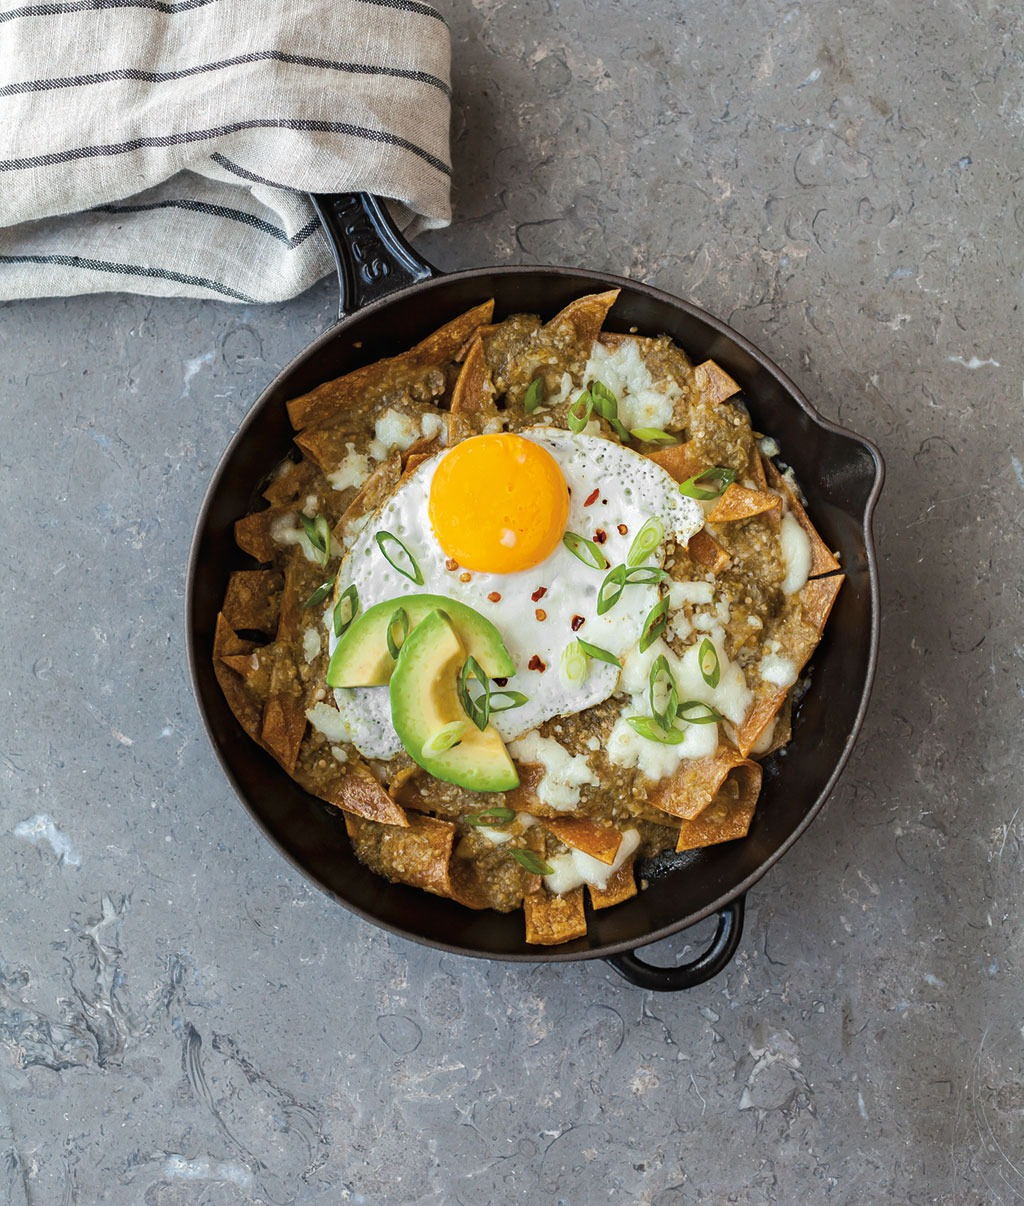 Baked Tomatillo Chilaquiles